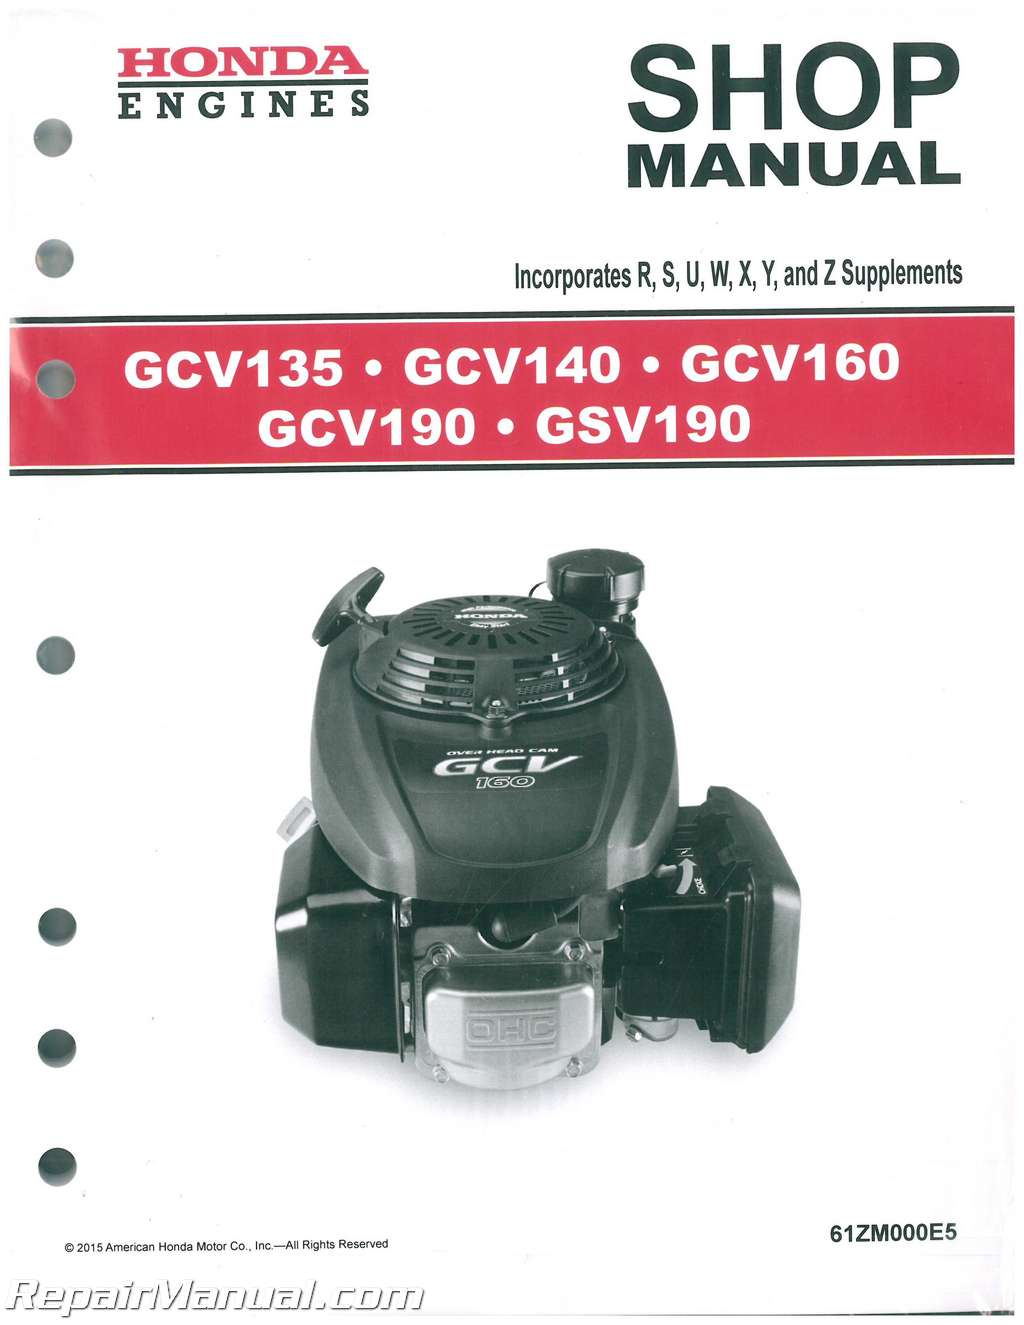 Honda GCV135 GCV160 GCV190 And GSV190 Engine Shop Manual